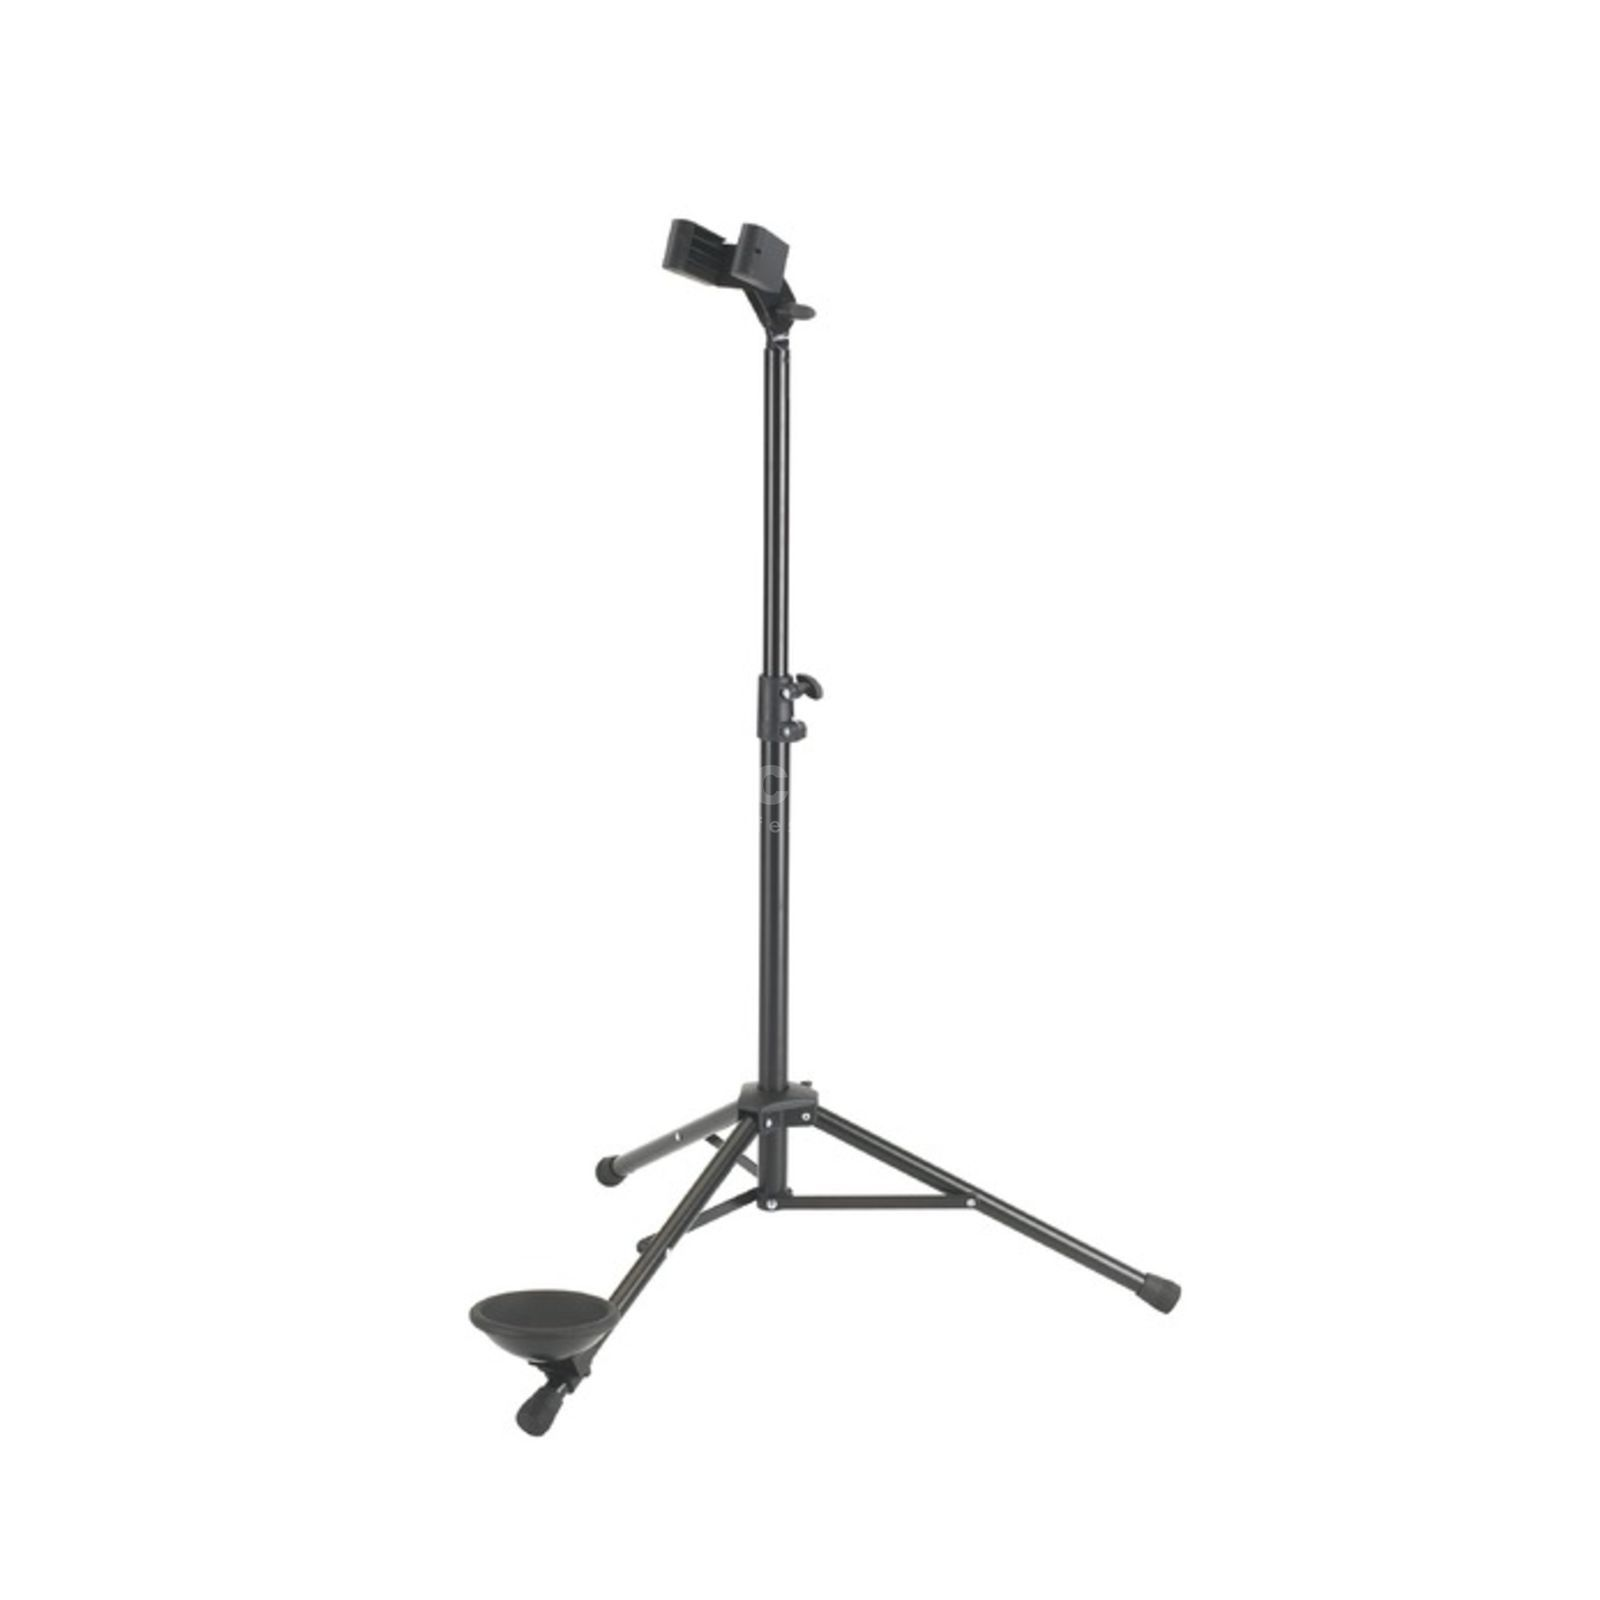 König & Meyer 15010 Bassoon Stand Product Image